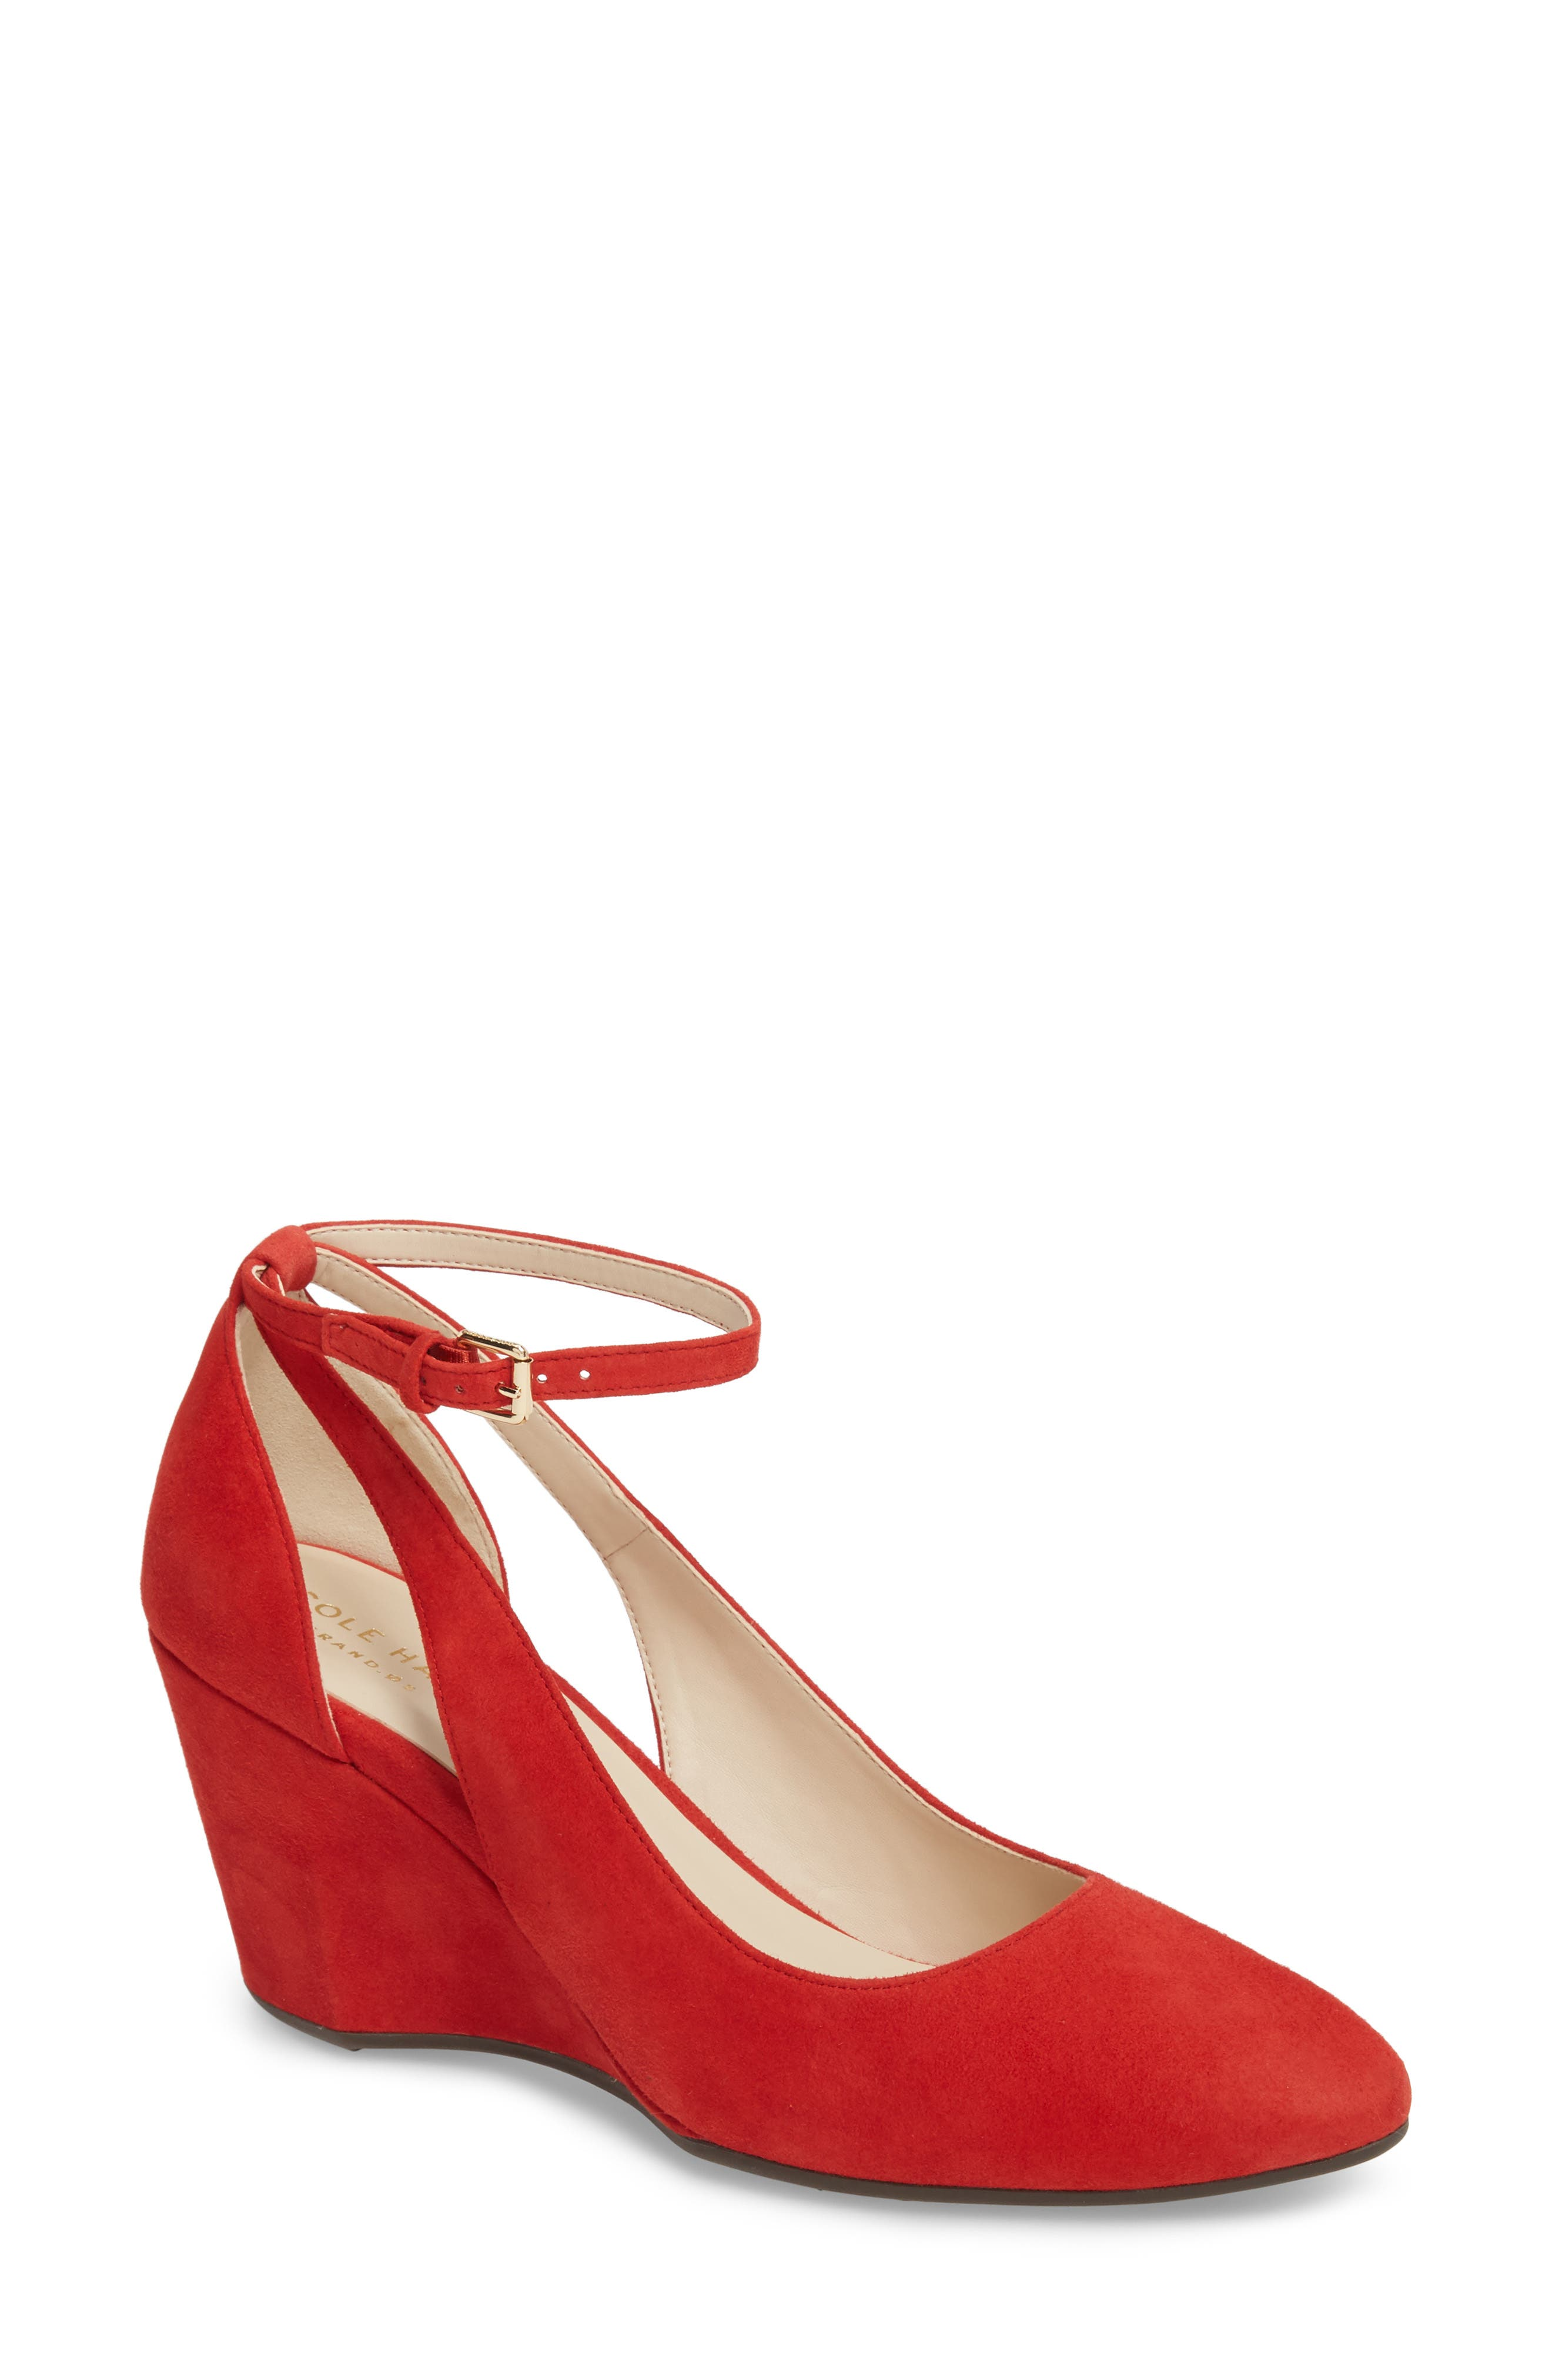 Lacey Cutout Wedge Pump in Barbados Cherry Suede